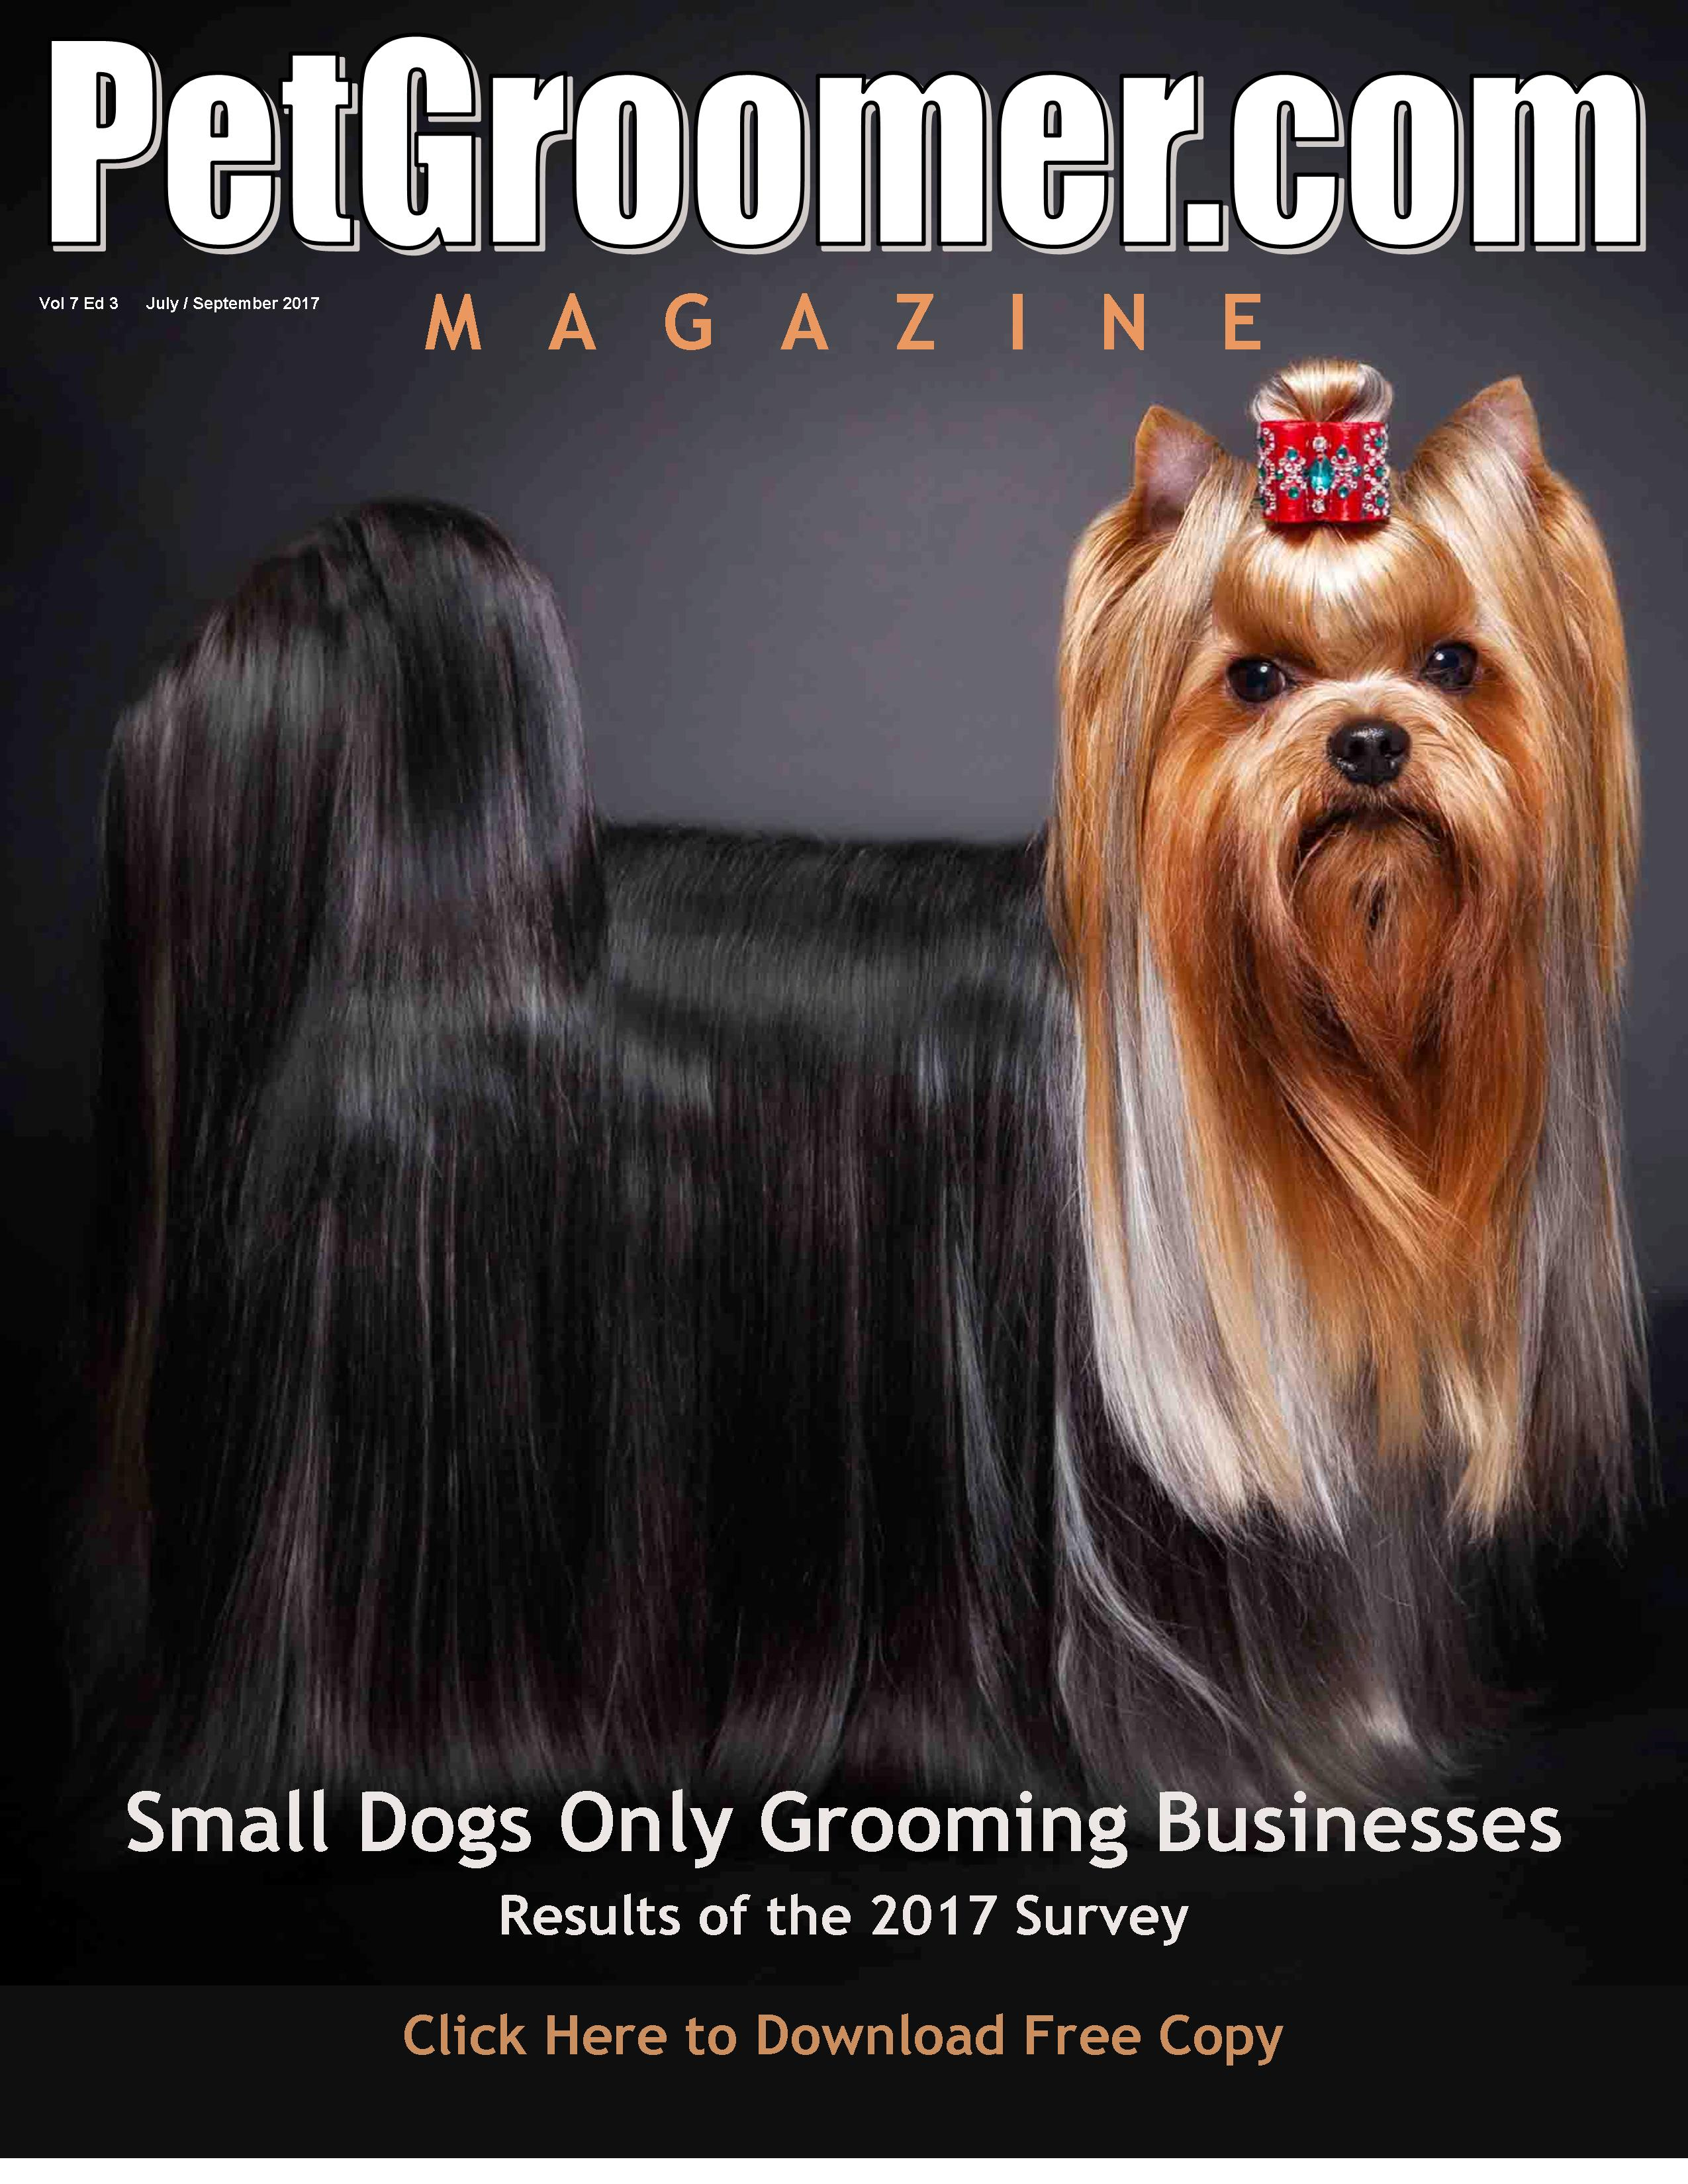 Yorkie haircuts and yorkie grooming resources rachael edwards -  Professional Reading For Dog And Cat Stylists Groomers And Career Seekers